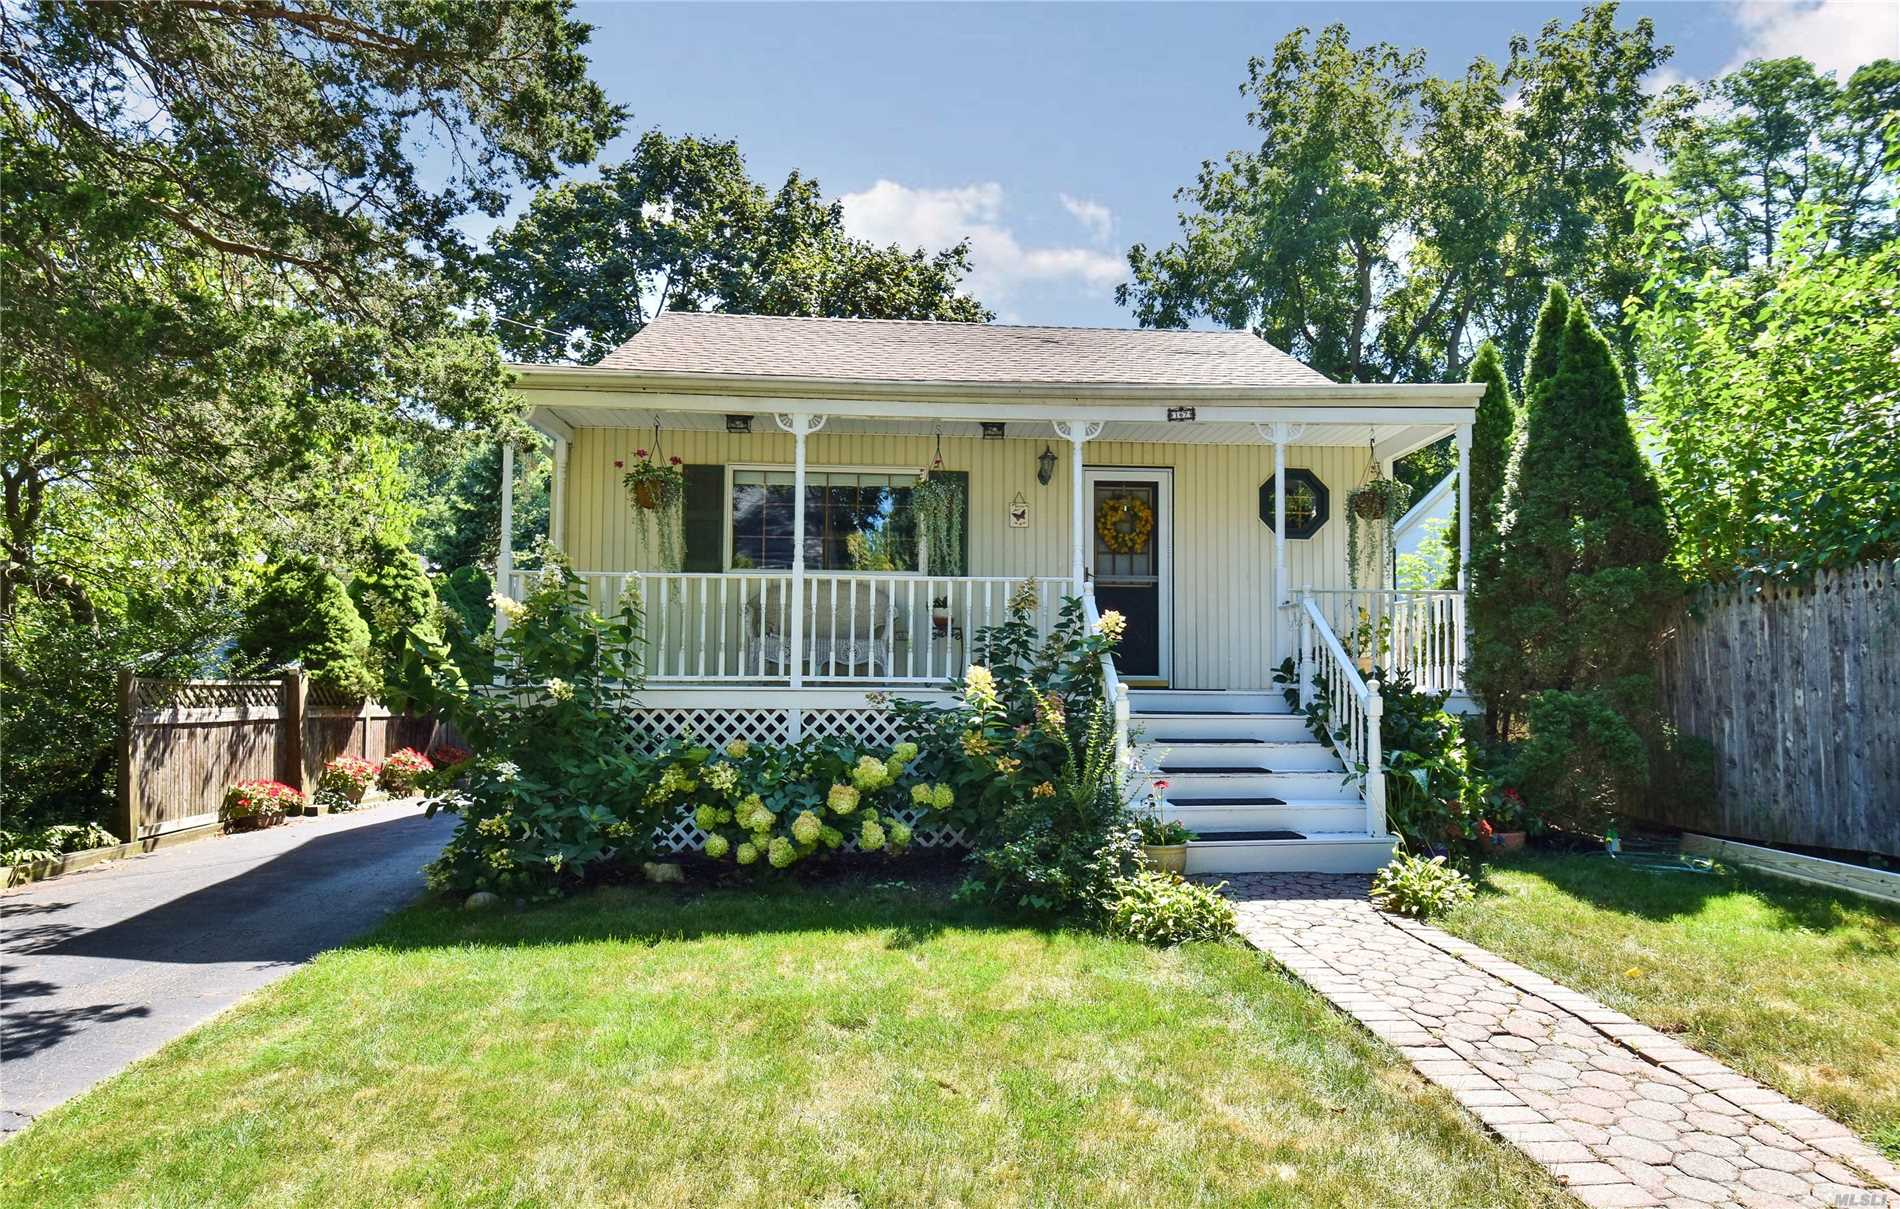 Charming Home In San Remo With Winter Water Views Of The Nissequogue River. Tastefully Updated Kitchen, Bathrooms, Roof And Windows . Low Low Taxes. New Pavor Patio, Mooring Rights, Private Deeded Beach. Close To Shopping And Lirr